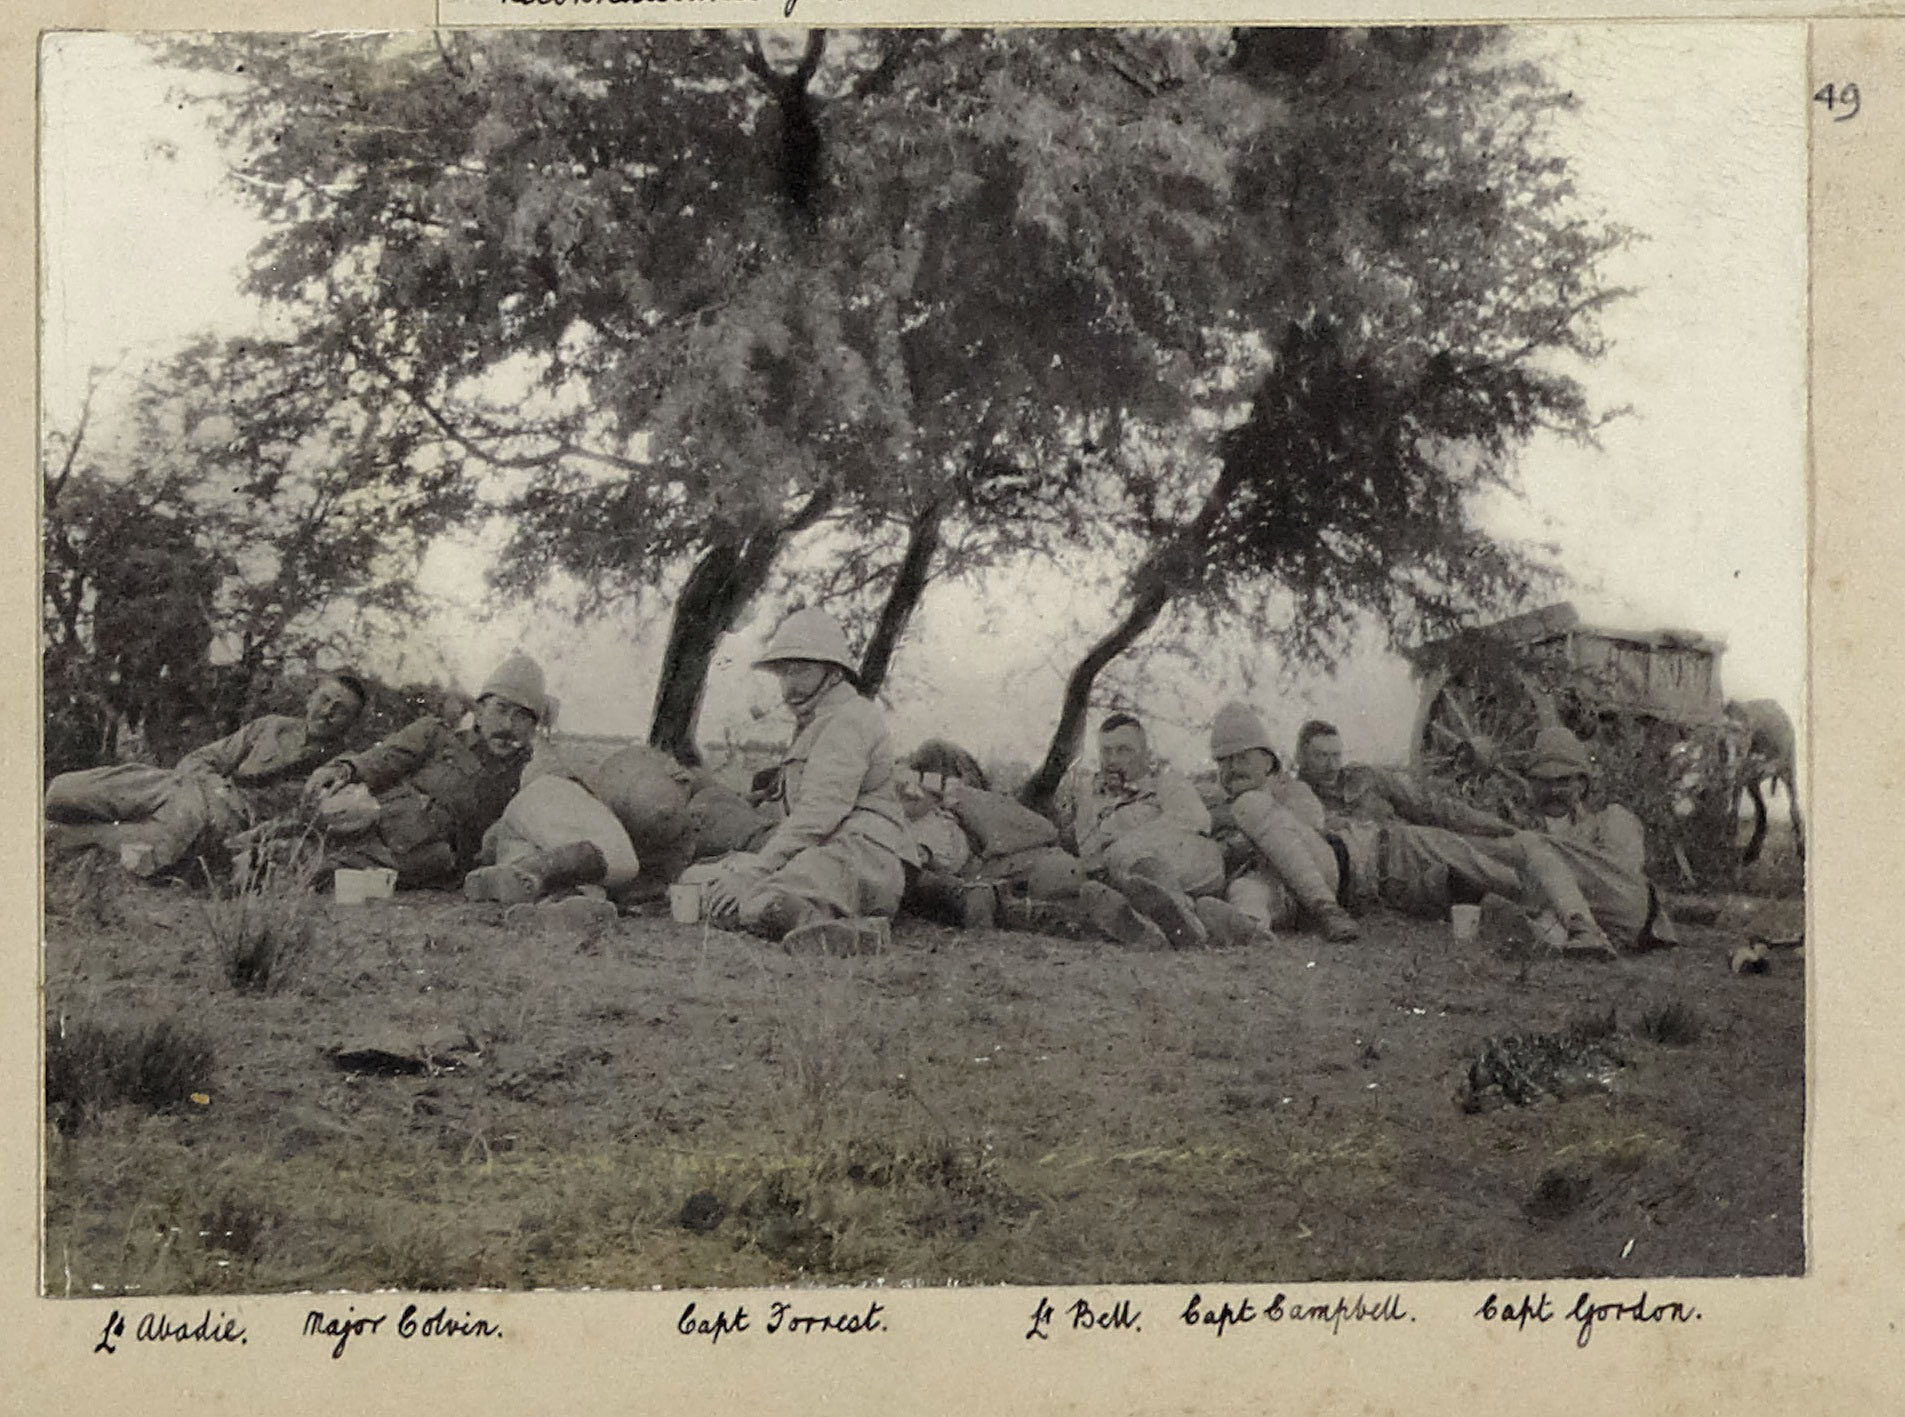 This photograph, entitled 'Reconaissance from Modder River', shows a group of officers of the 9th Lancers resting in South Africa during the Boer War - including Captain Edward Robertson Gordon and Major Forrester Farnell Colvin, authors of  Diary of the Ninth Lancers in South Africa 1899-1902 , and Lieutenant Eustace Abadie, also the author of a diary (see below). It was taken between 28 November 1899, when Colvin arrived with the regiment, and 13 December 1899, when Gordon left to become Brigade-Major of the 1st Cavalry Brigade, and may have been taken on 29 November when Colvin and Gordon's diary records the regiment reconnoitering Modder River and village (copyright 9th/12th Lancers Regimental Museum, Accession No 2090-16-49).